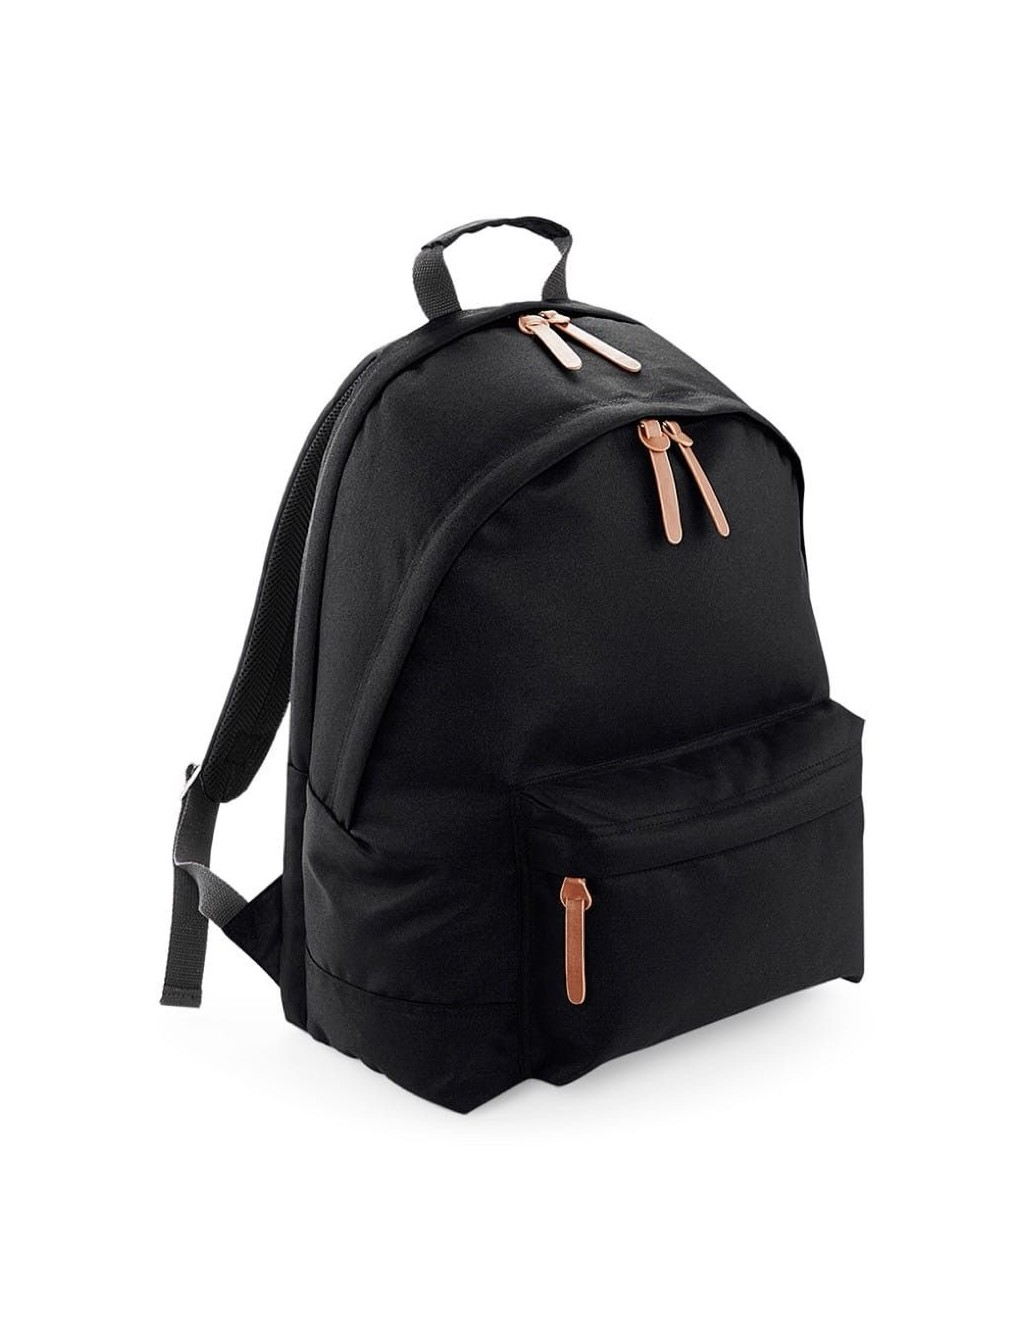 Contrast classic backpack